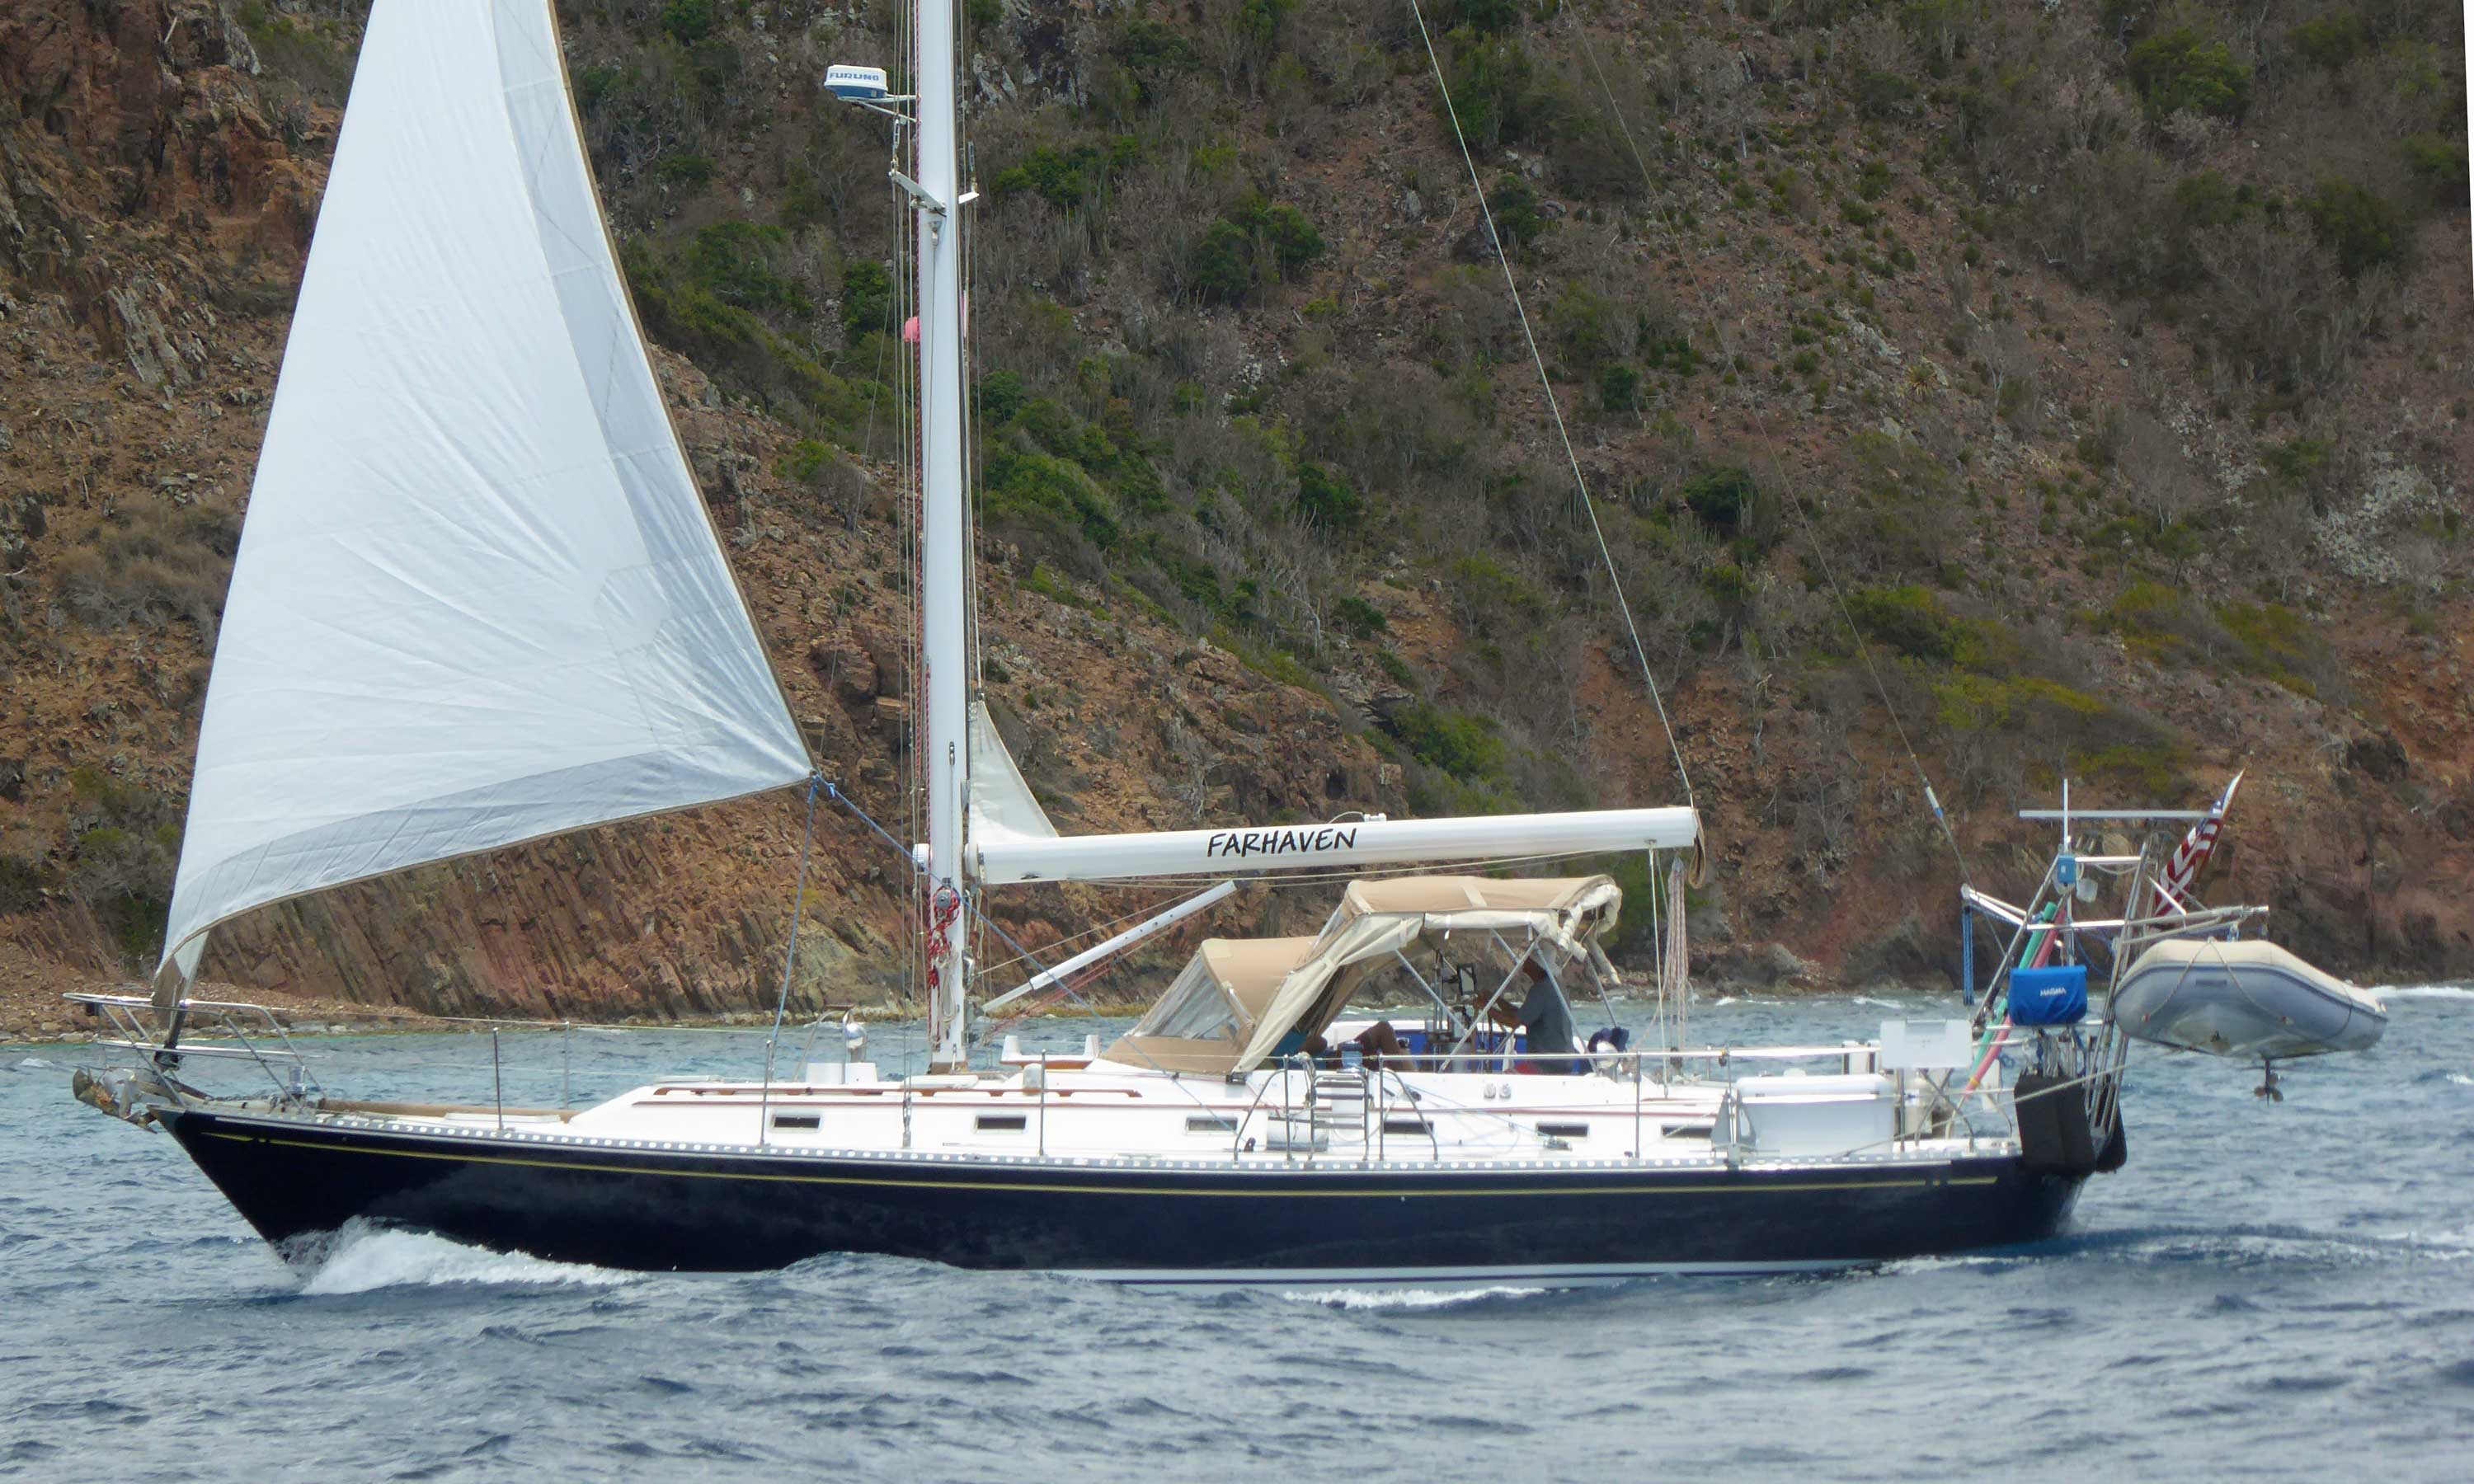 A Hylas 44 sailboat